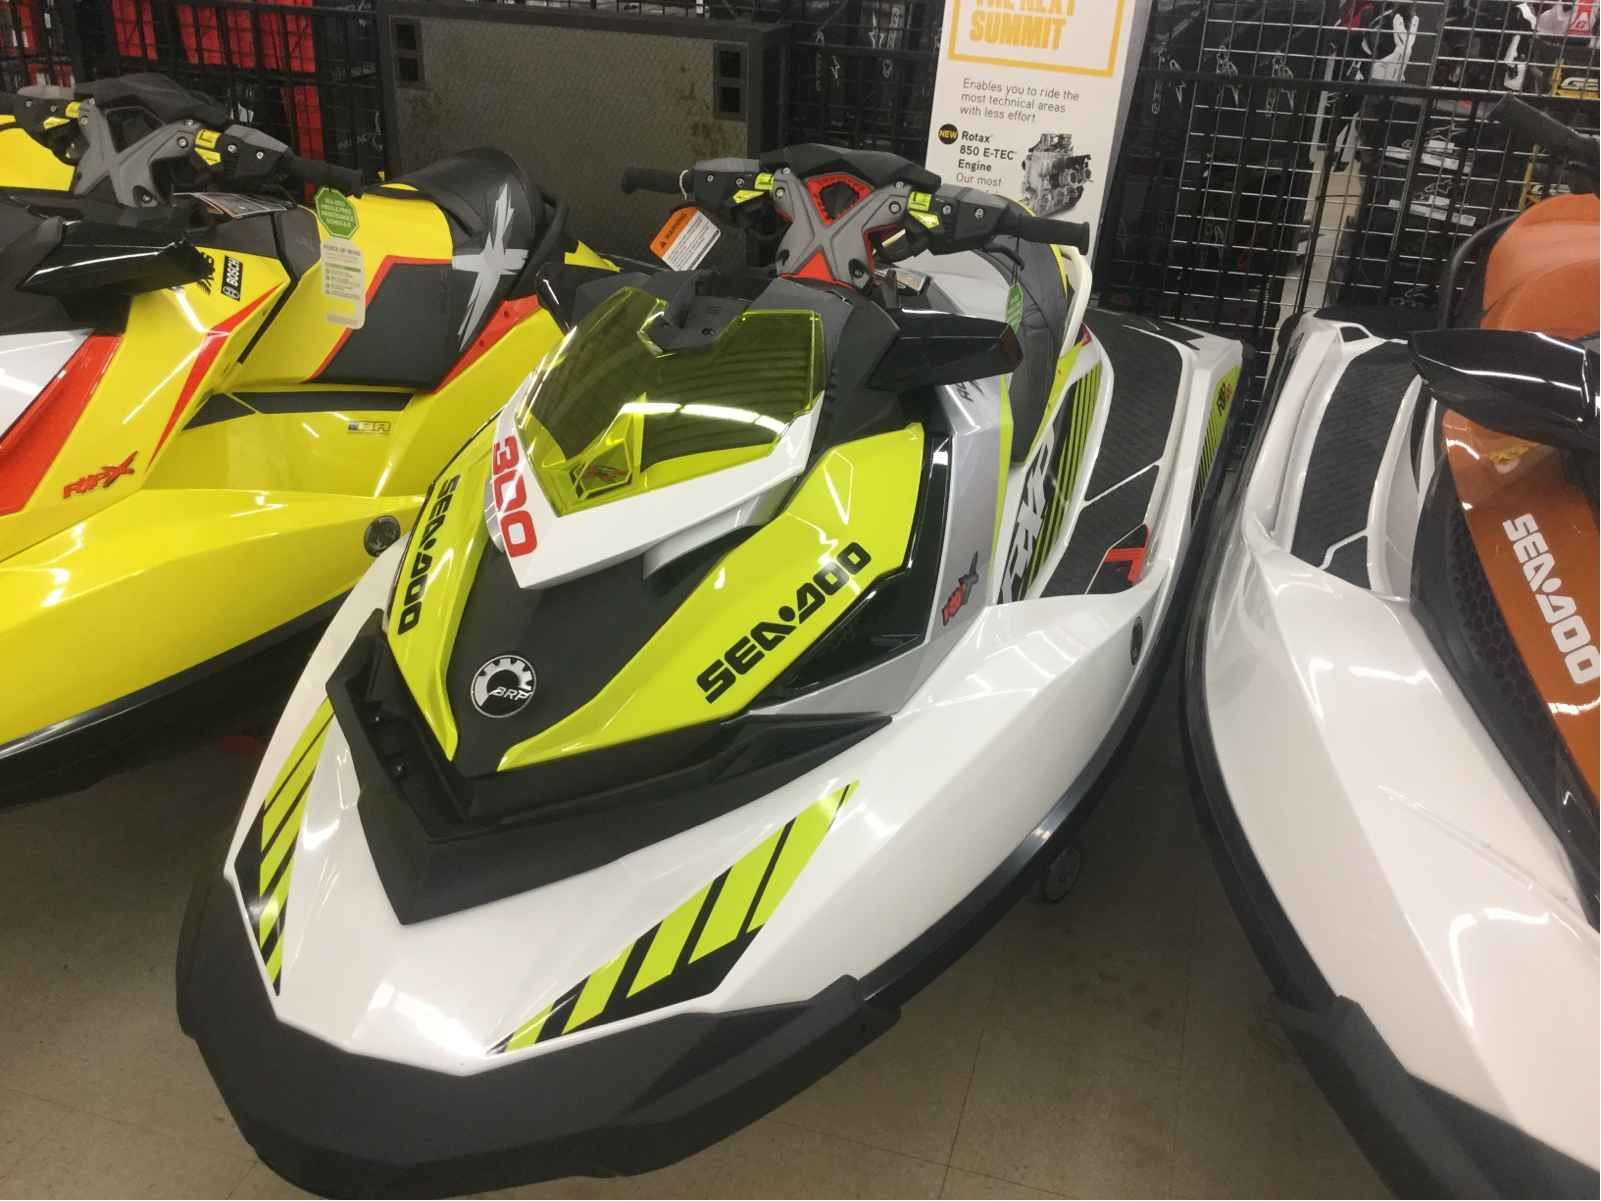 New 2016 Sea Doo Bombar r RXP X 300 Jet Skis For Sale in Nevada NV